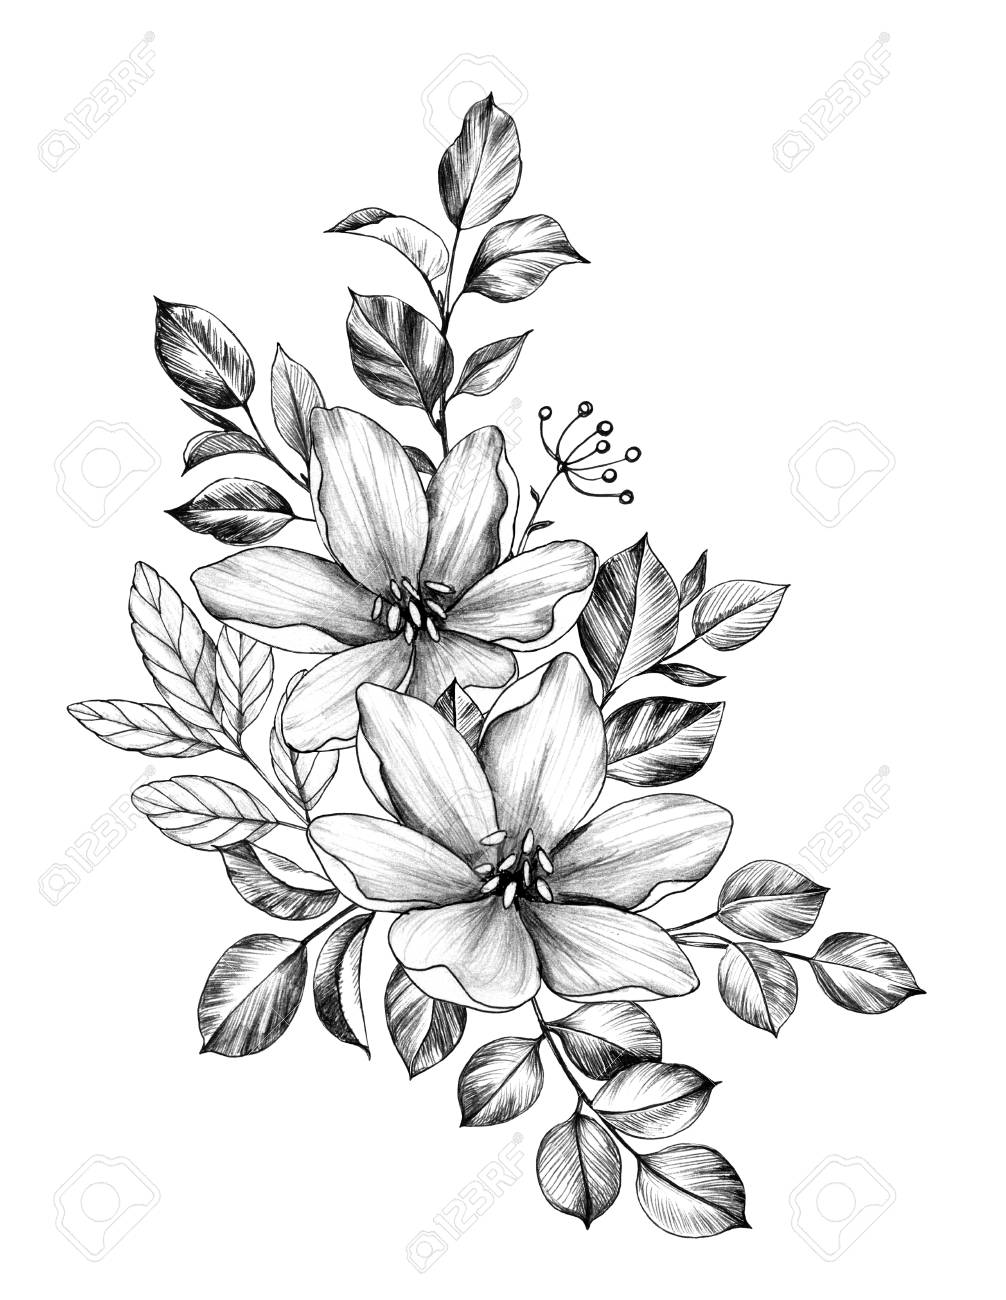 Sketches Of Flowers And Leaves In Pencil Chelss Chapman